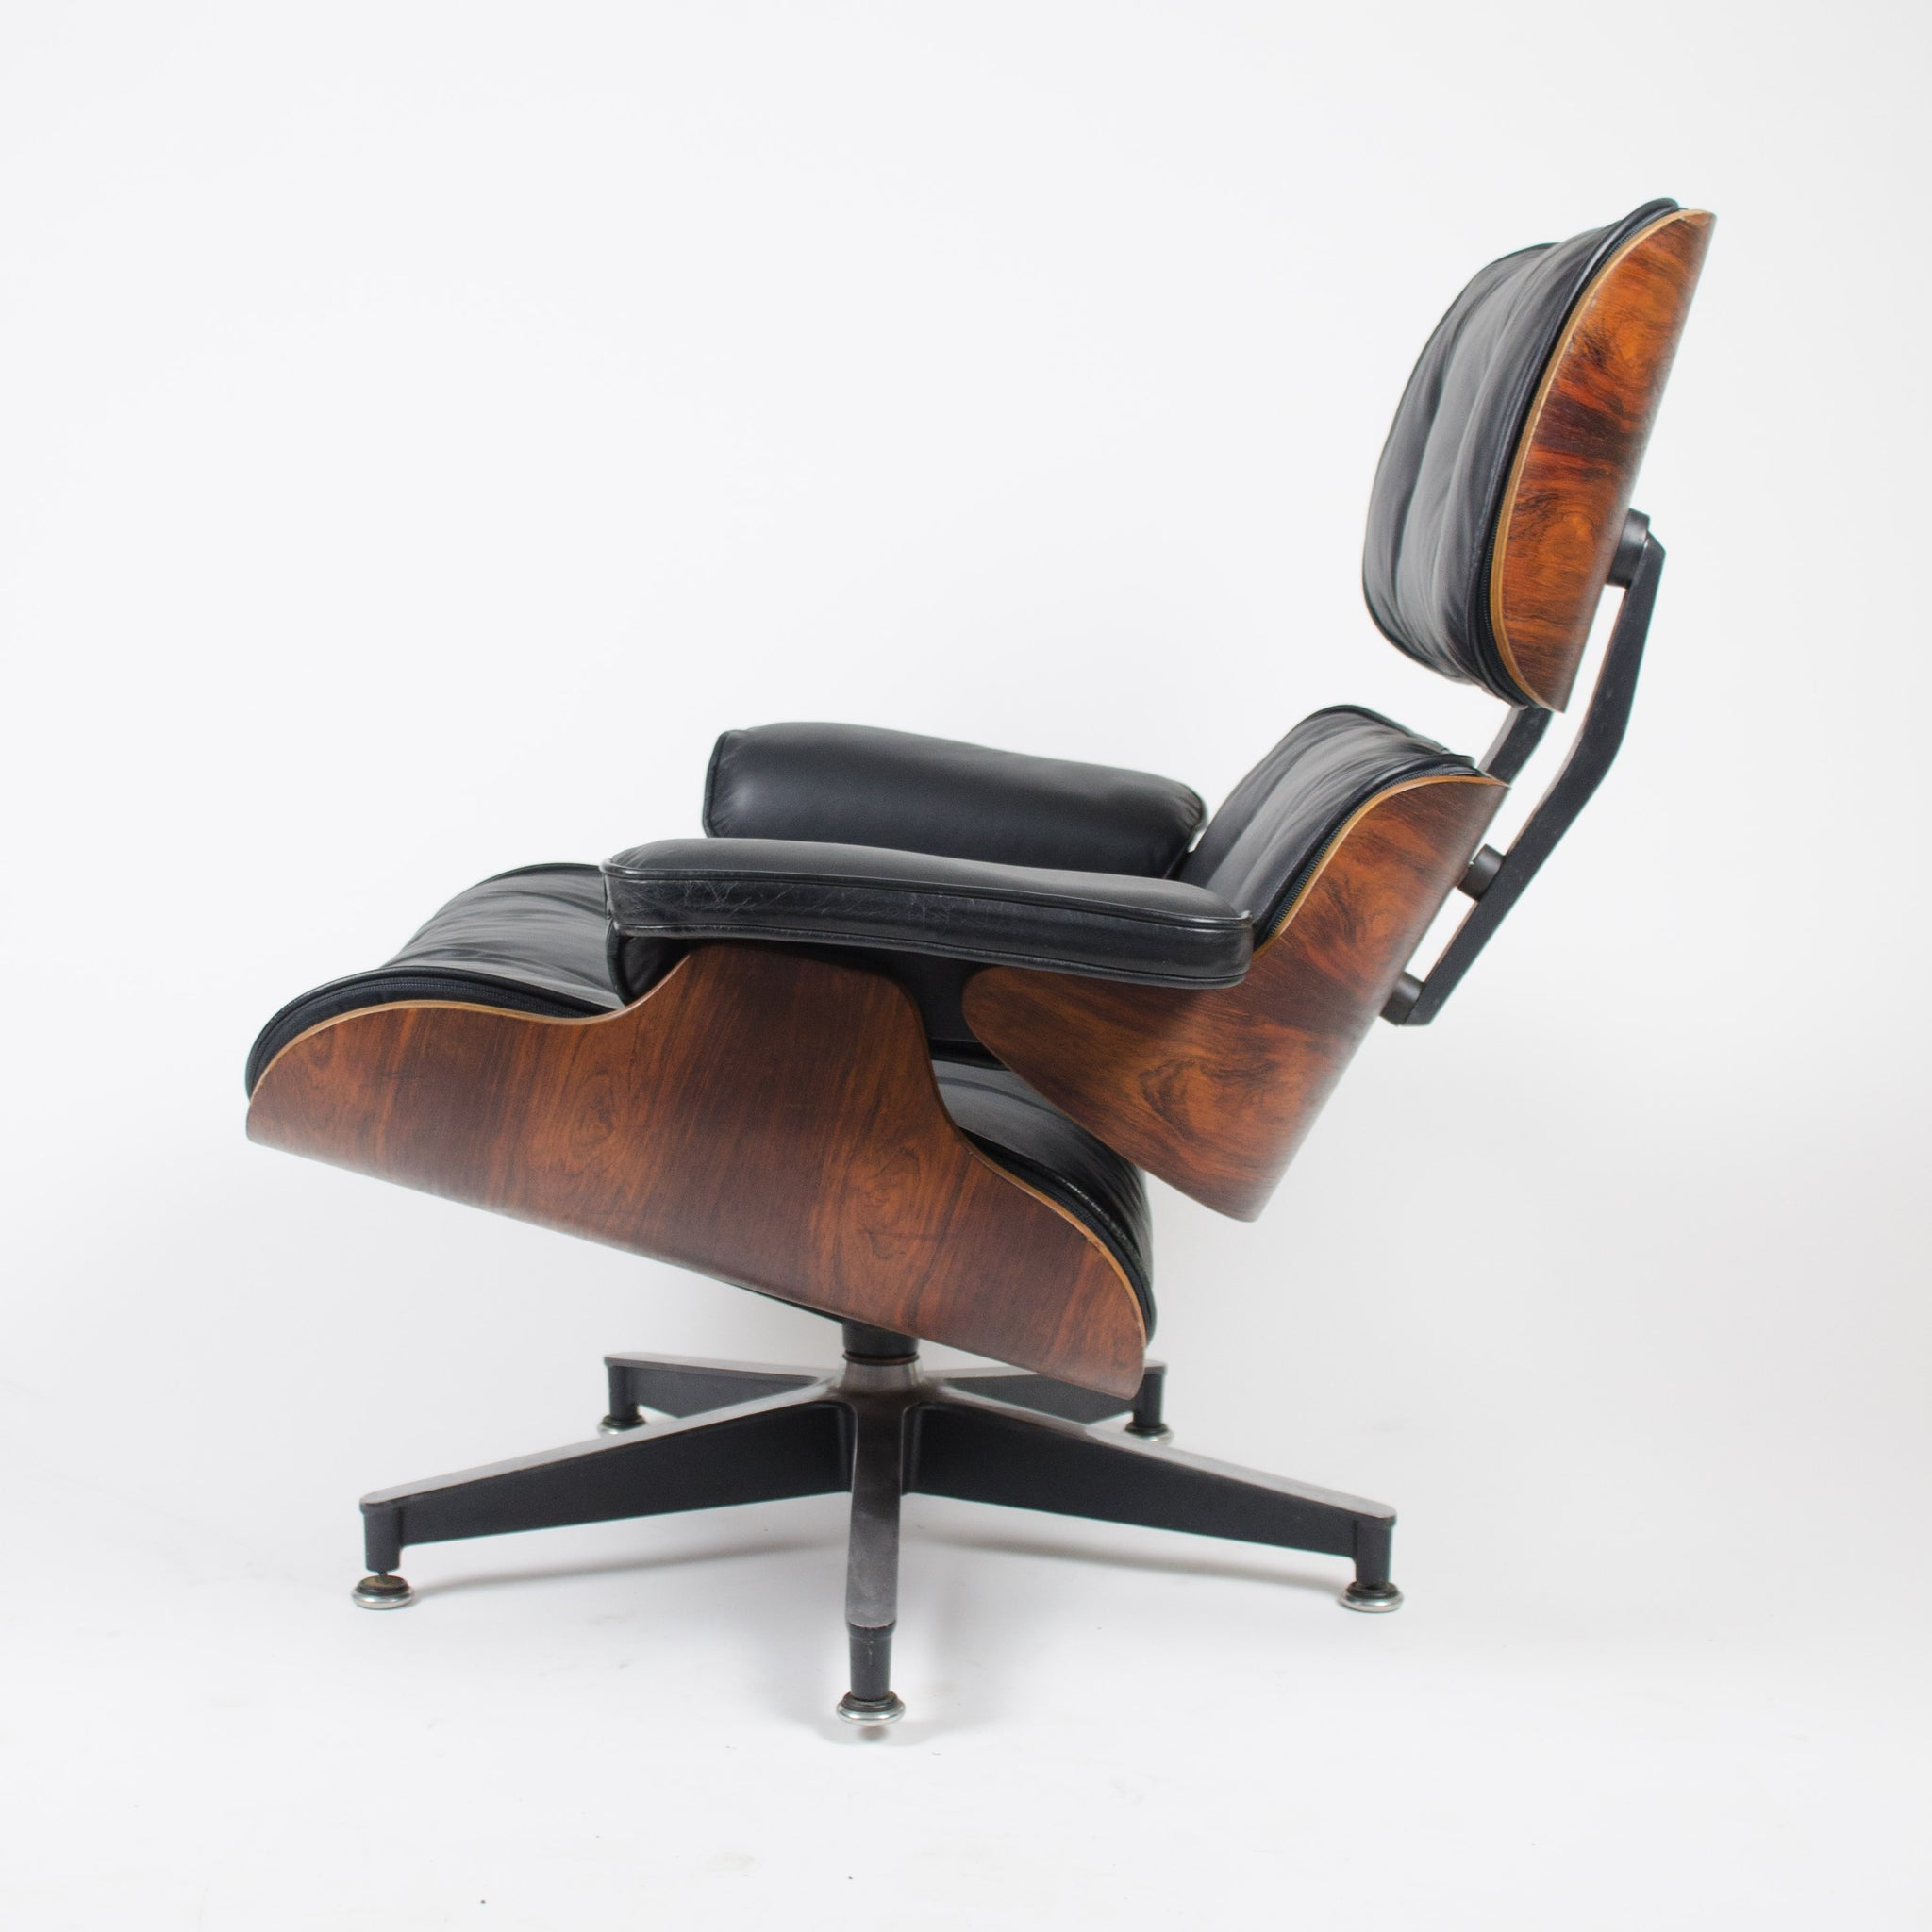 SOLD 1950's Herman Miller Eames Lounge Chair & Ottoman Rosewood Brand New Cushions